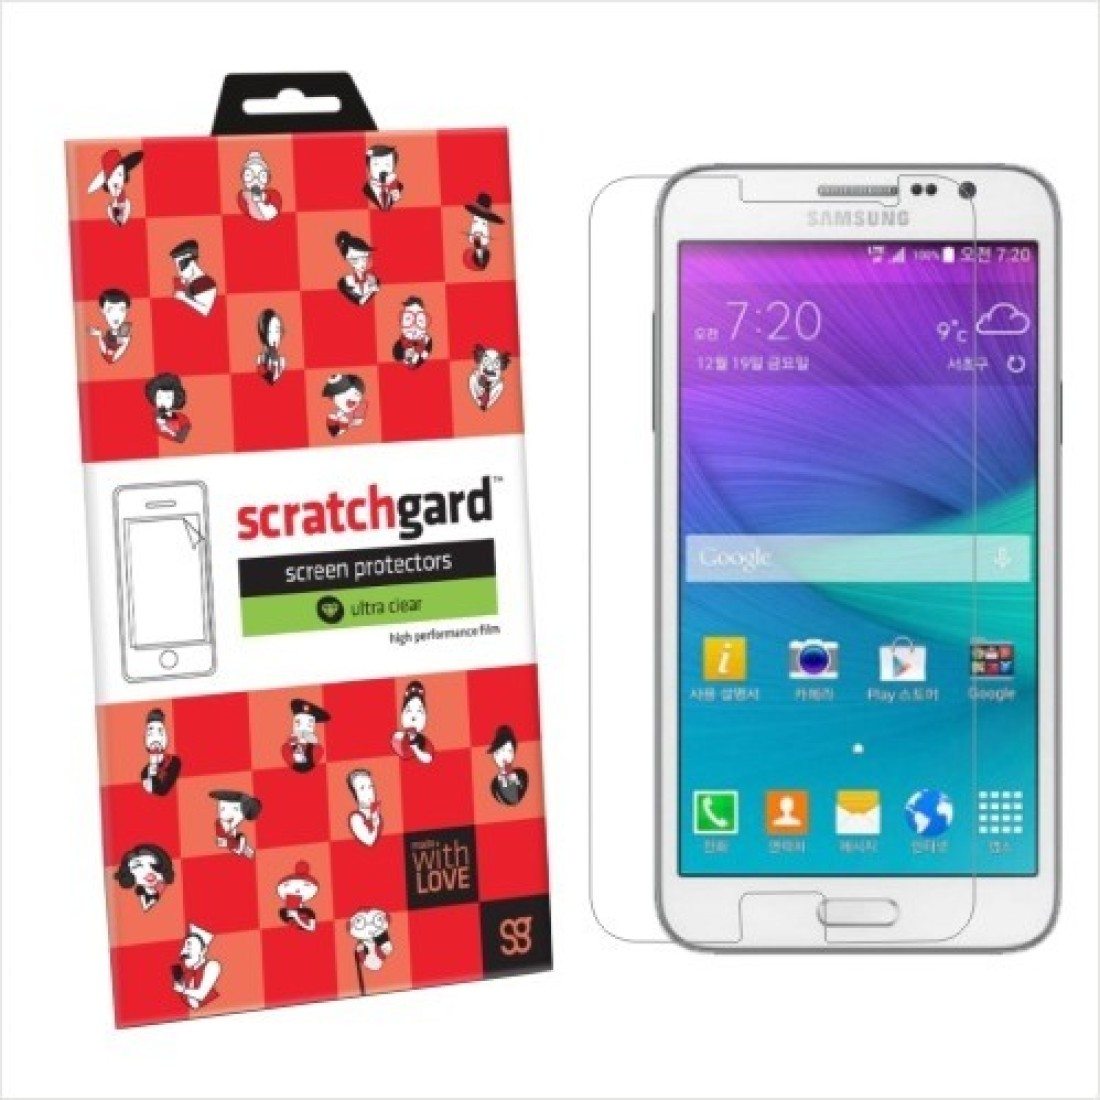 Scratchgard Original Ultra Clear - SG7202 Screen Guard for Samsung Galaxy Grand Max G7202